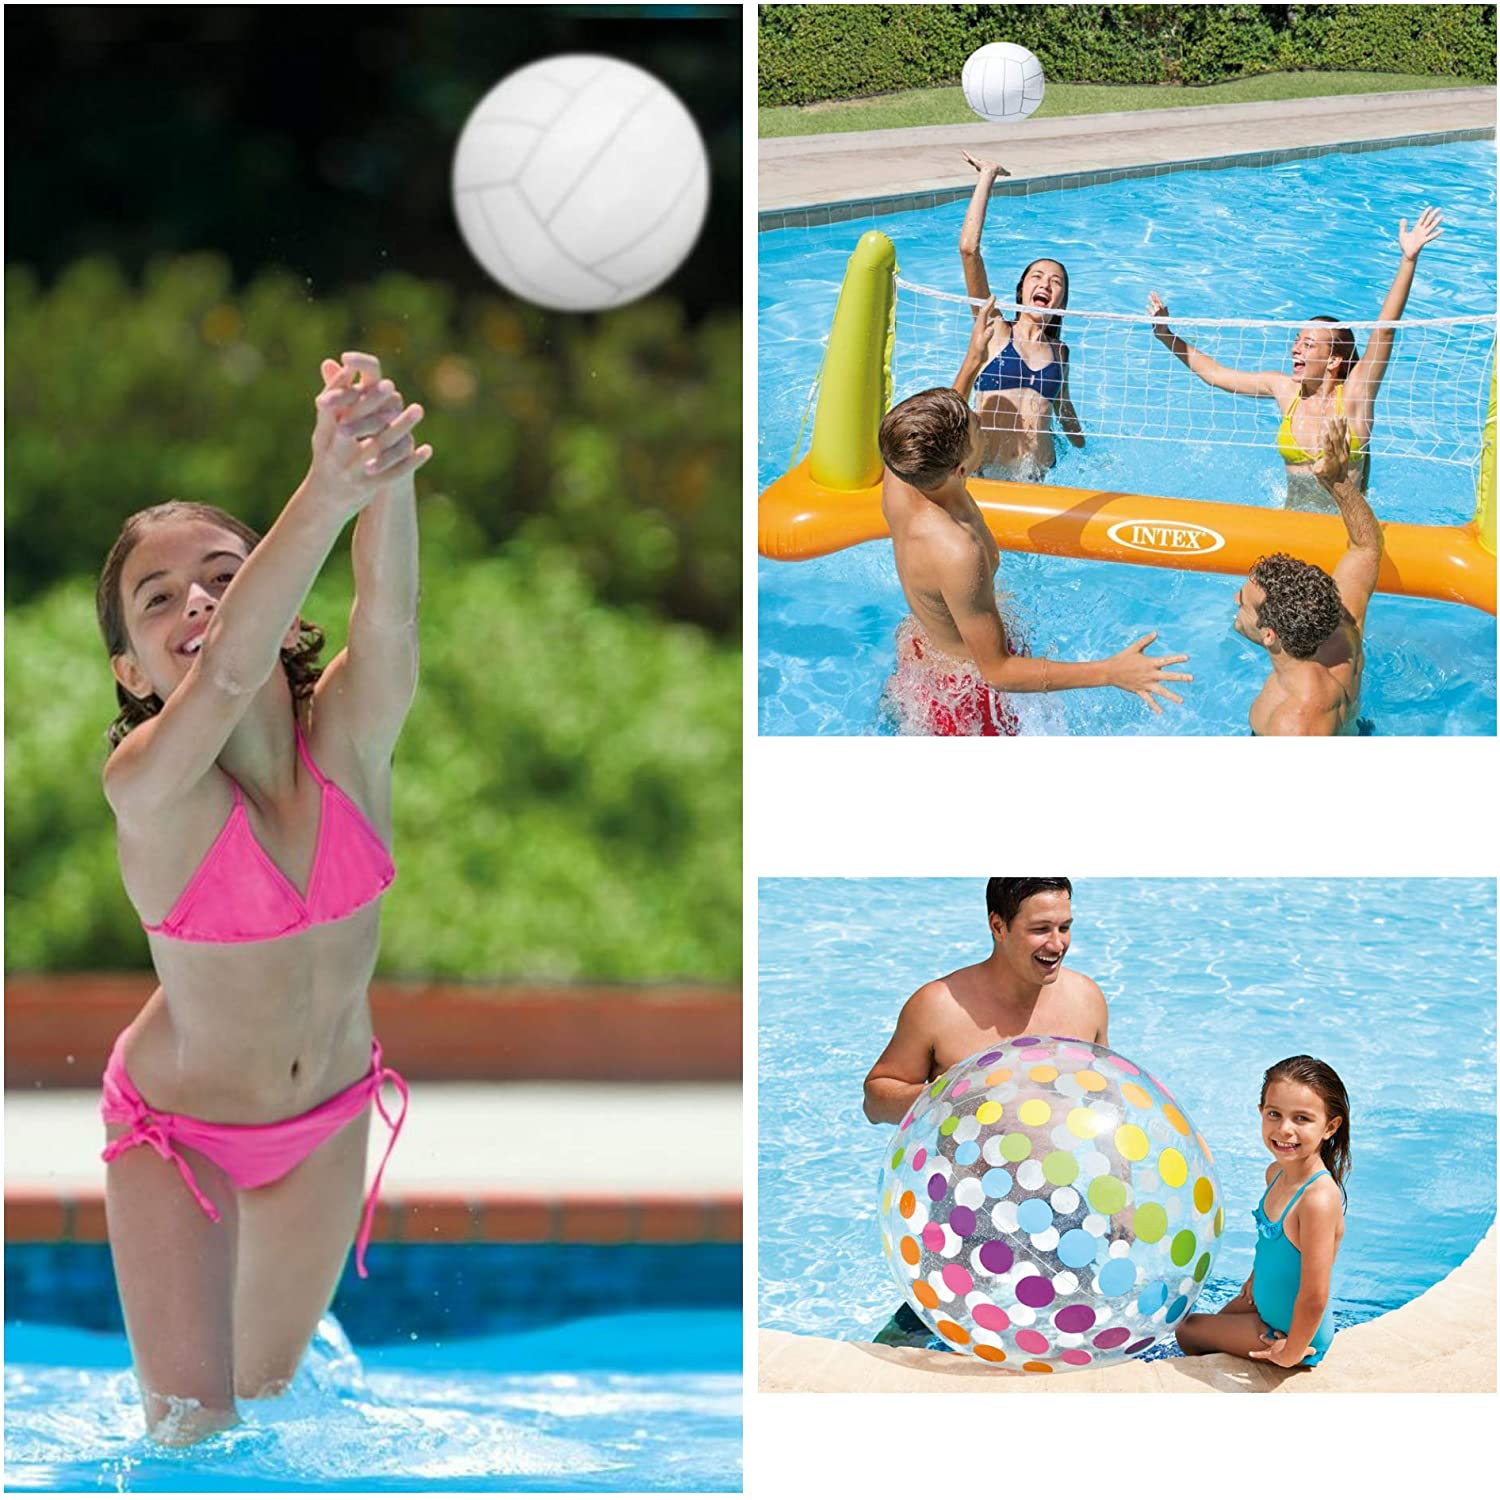 Intex Pool Fun Set • Pool Volleyball and Jumbo Beach Ball • for Pool Party and Family Fun (Ages 6+)